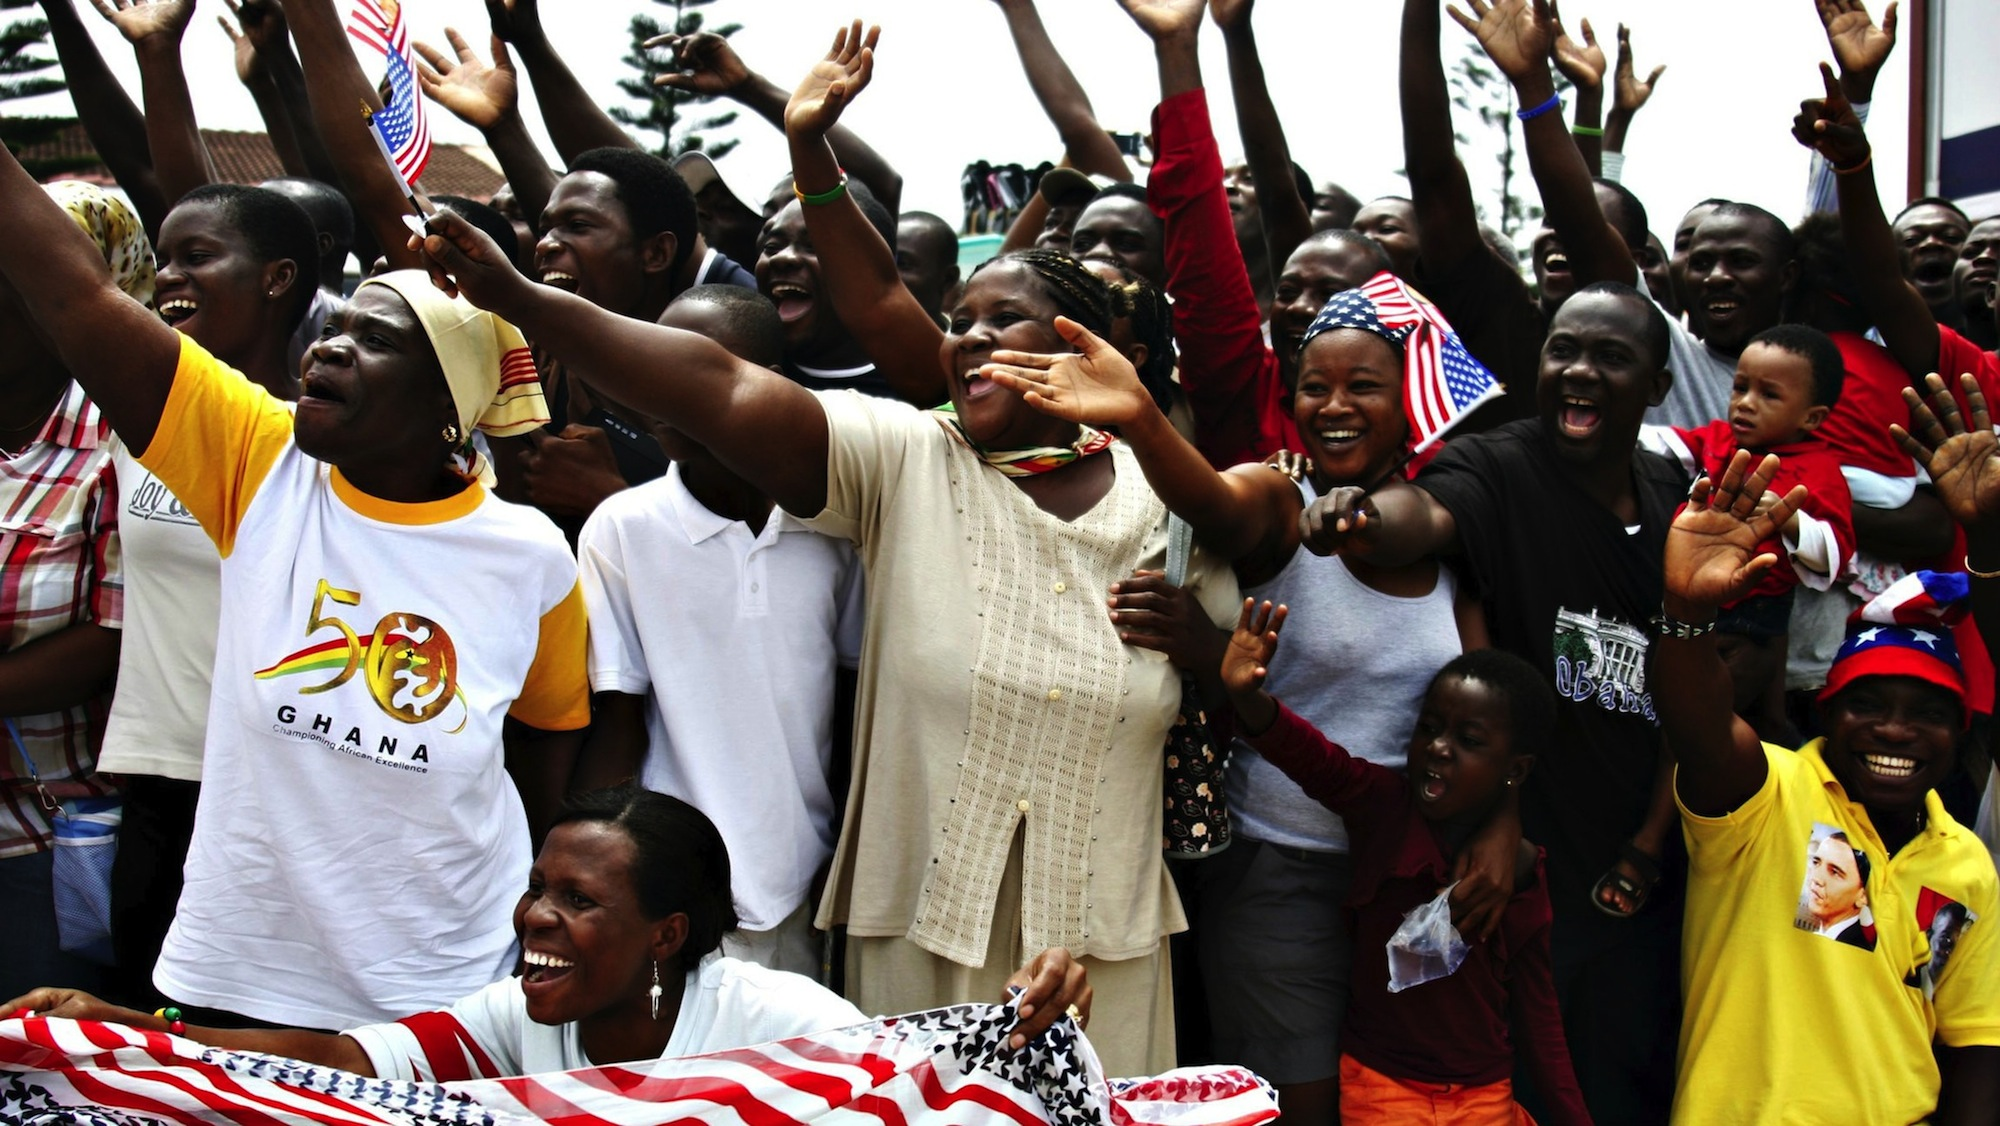 Ghanaians cheer during US president Barack Obama's visit to Accra in 2009